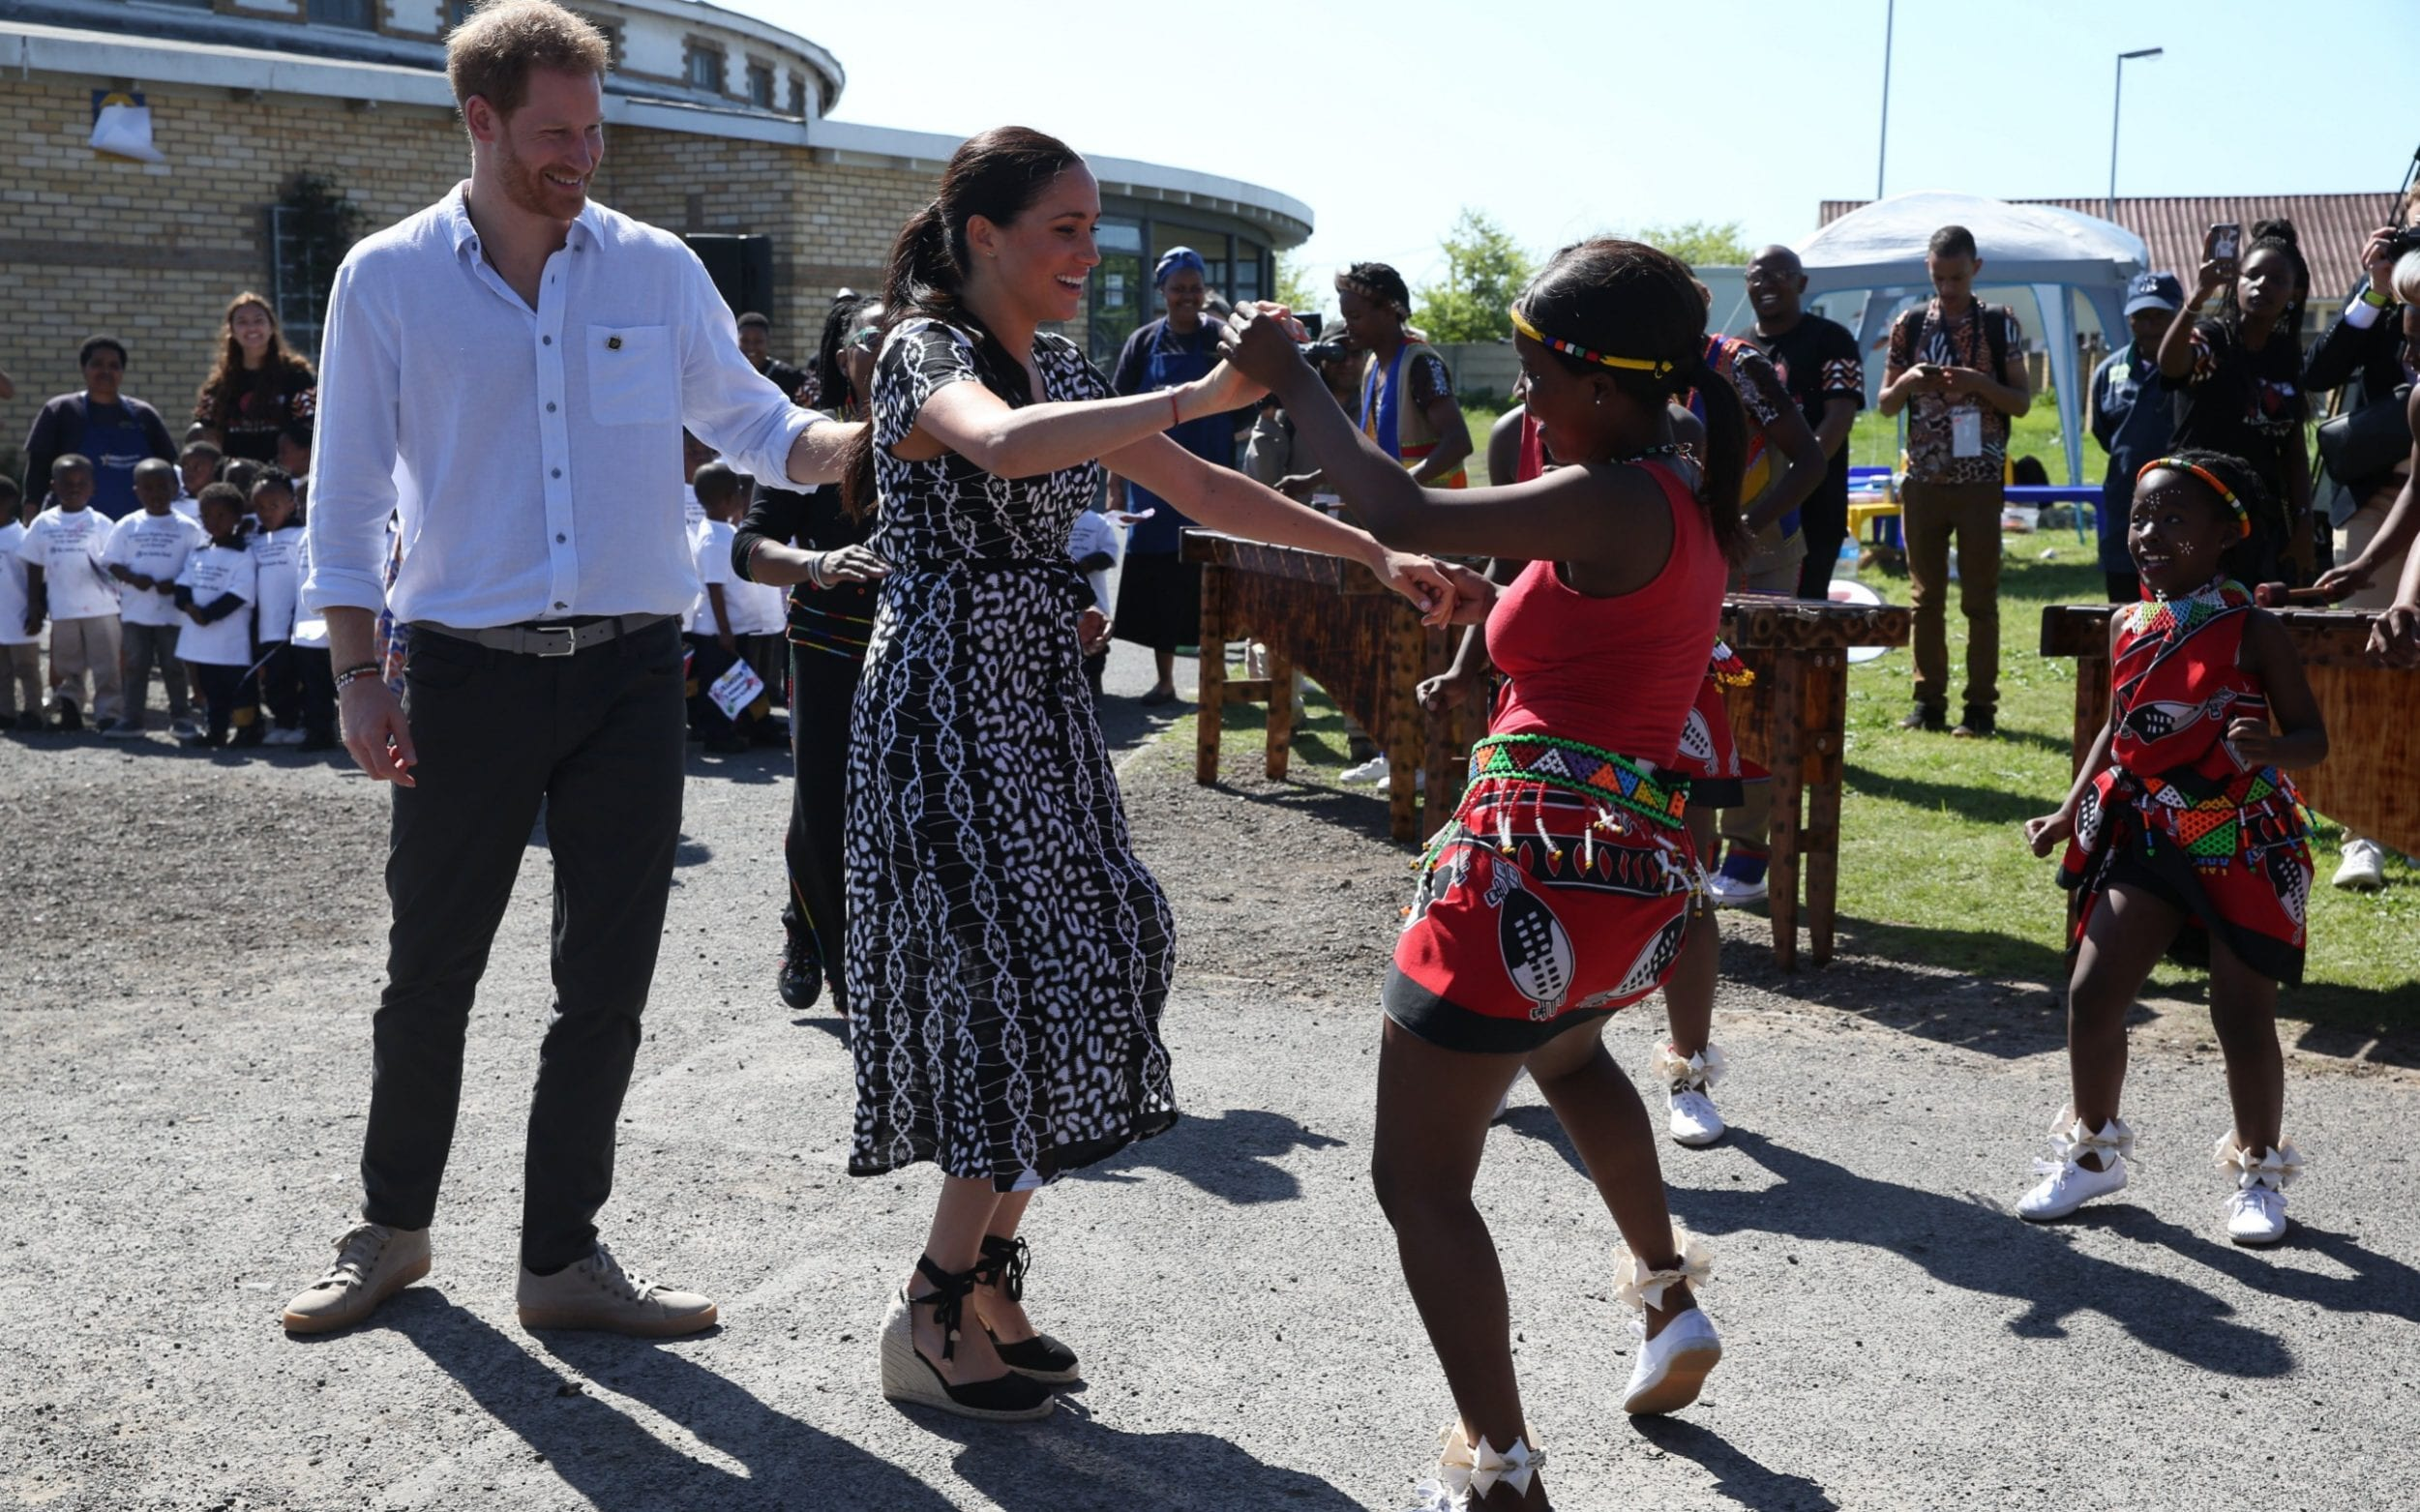 Duchess of Sussex tells South Africa: I am here as a mother, as a wife, as a woman of colour, and as your sister